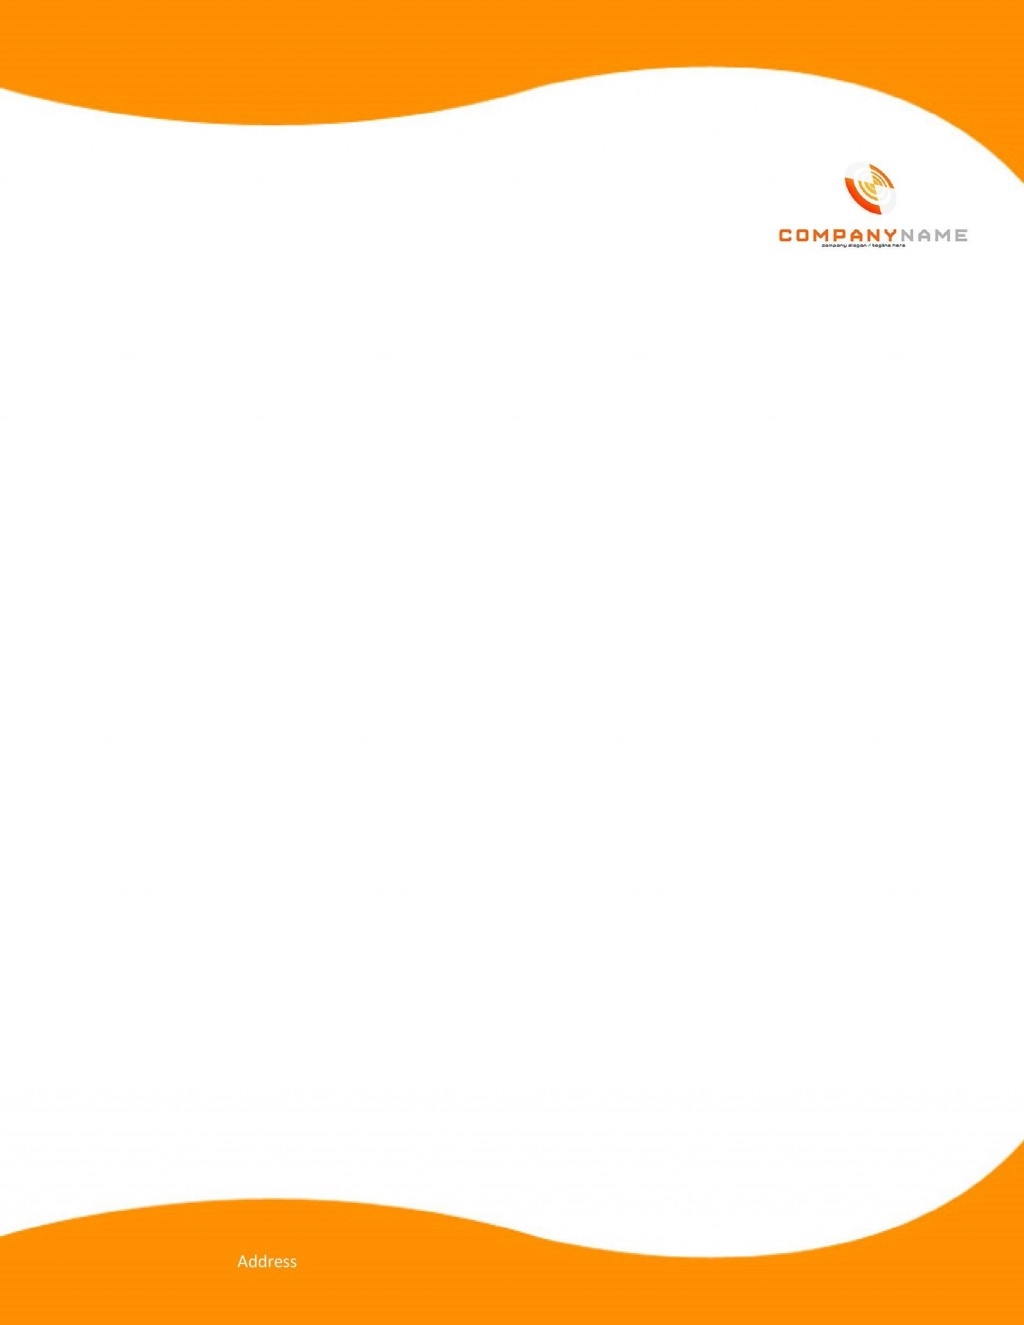 006 Stunning Letterhead Format In Word Free Download Pdf Highest Quality Large